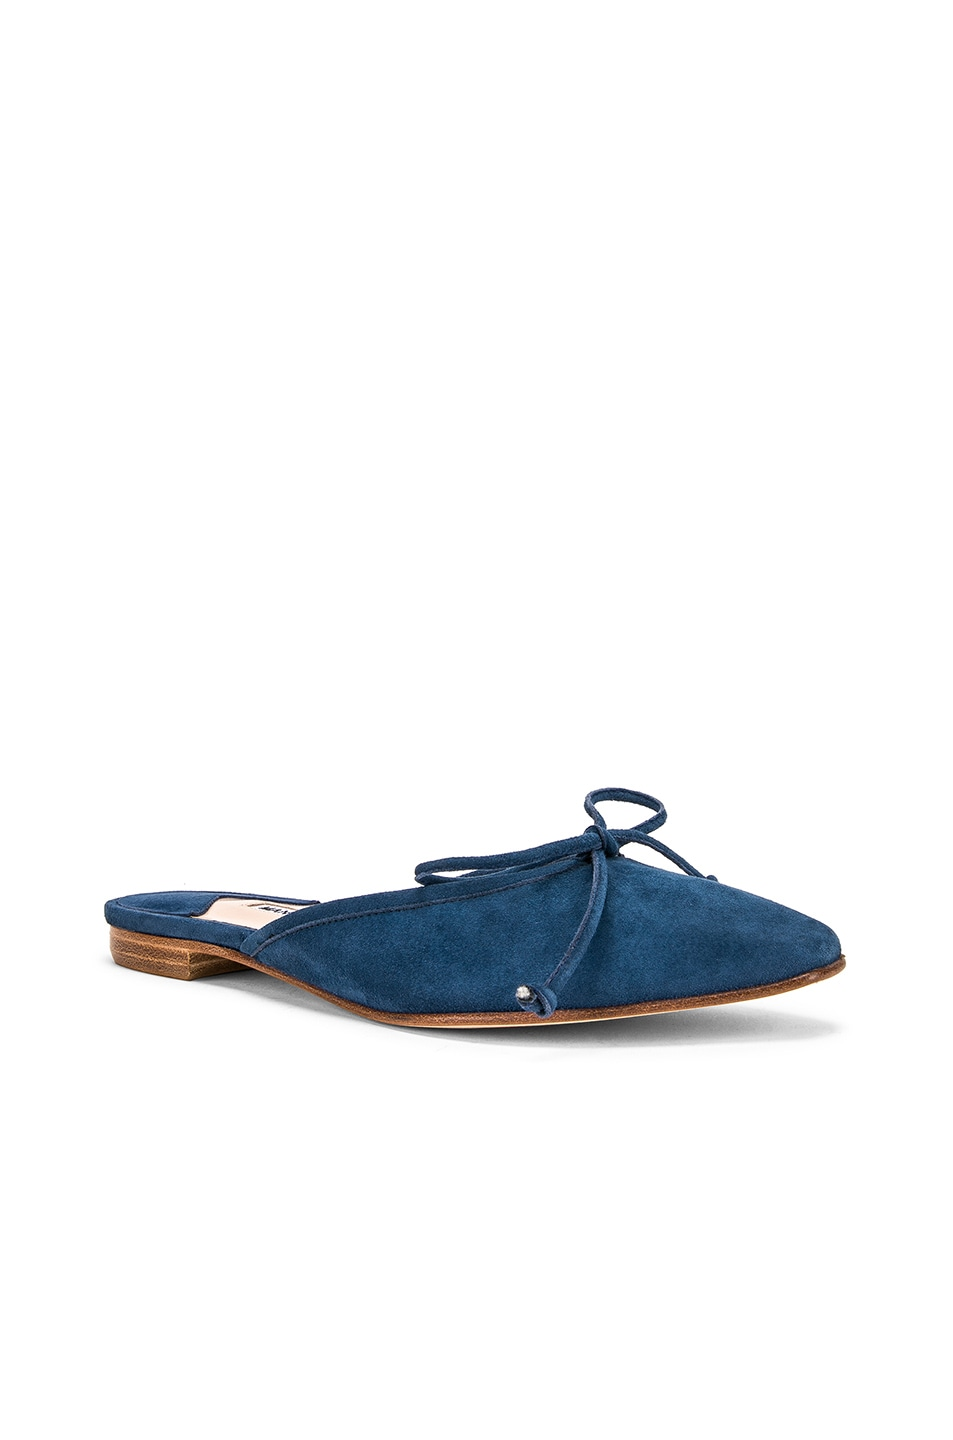 Image 2 of Manolo Blahnik Ballerimu Slide in Blue Suede